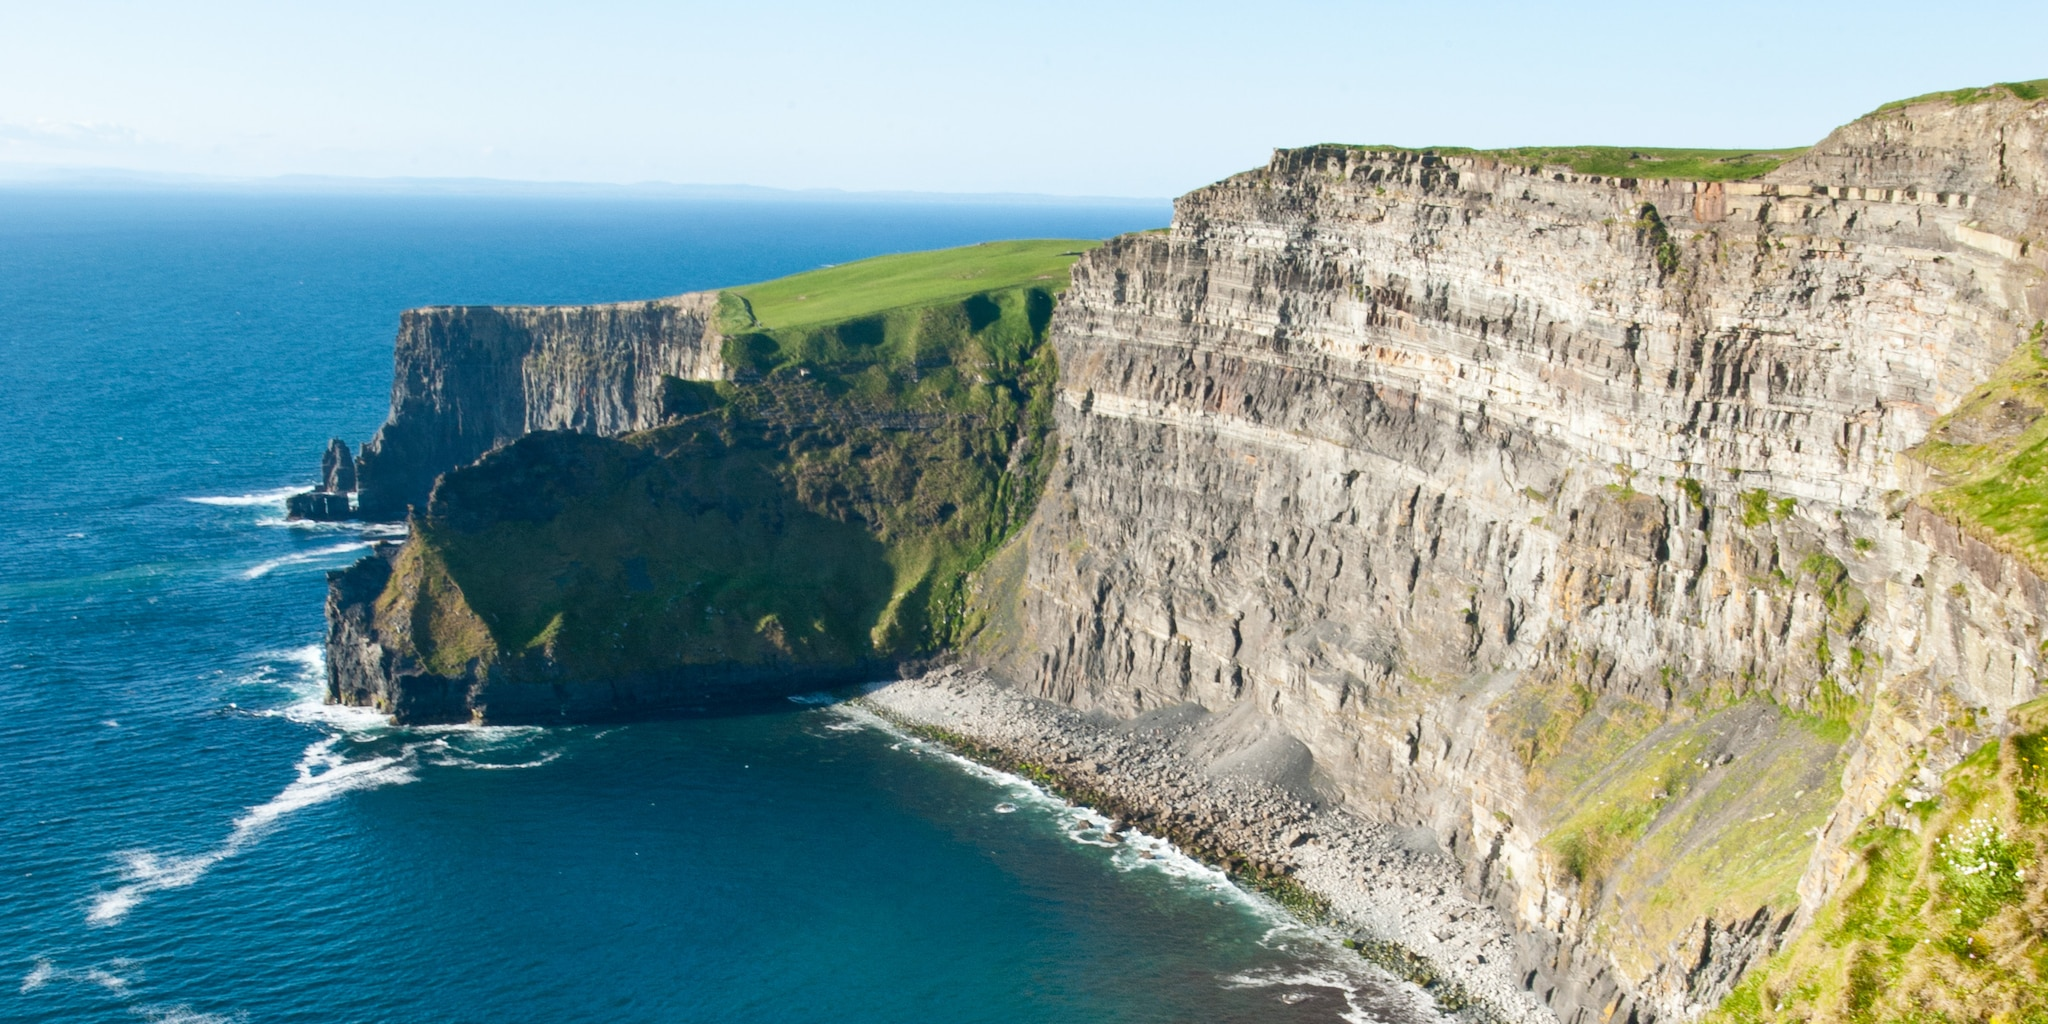 The Cliffs of Moher are one stop on the Ireland vacation